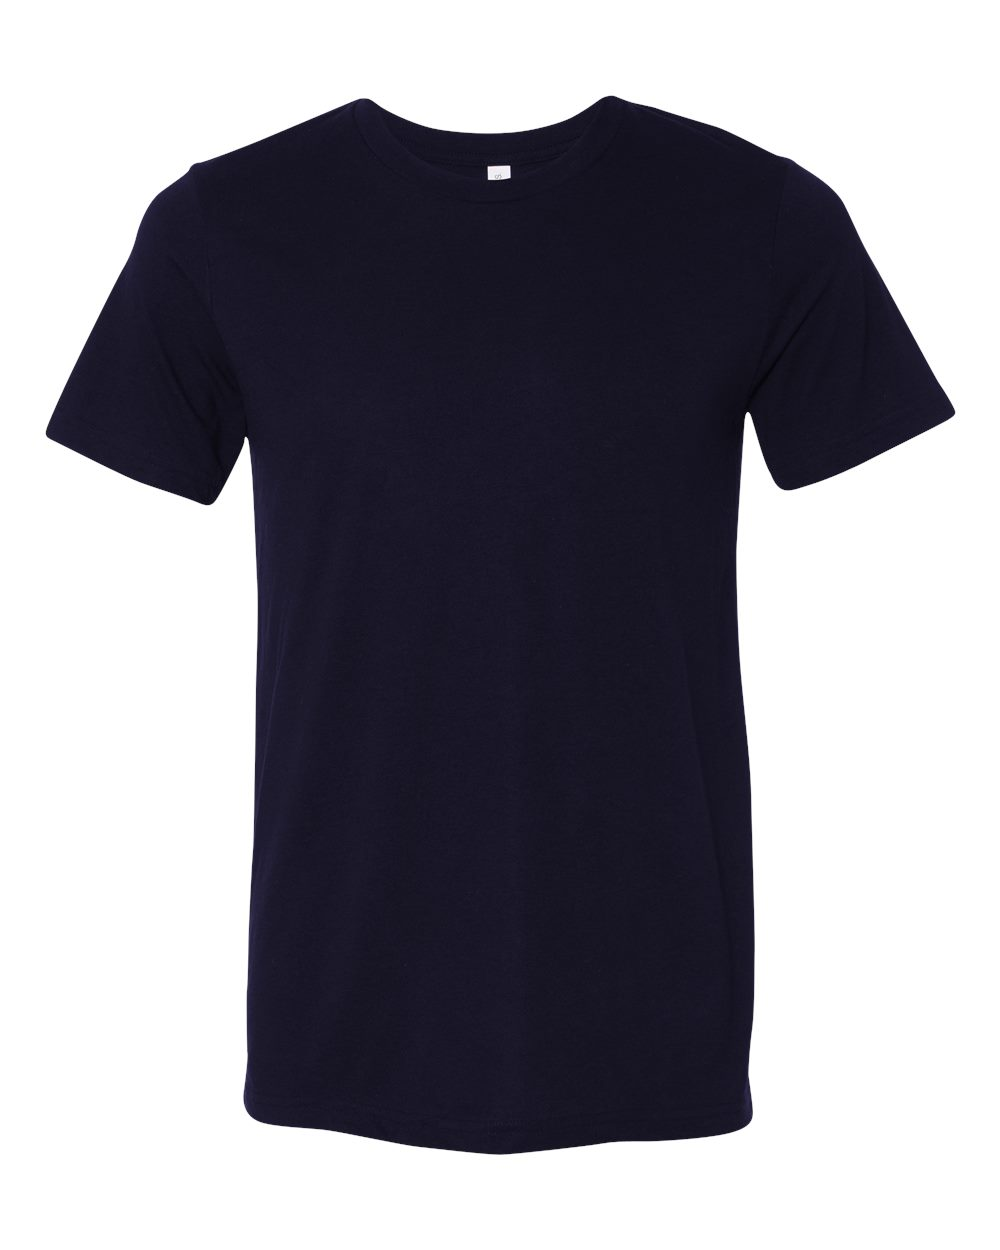 Solid Navy Triblend